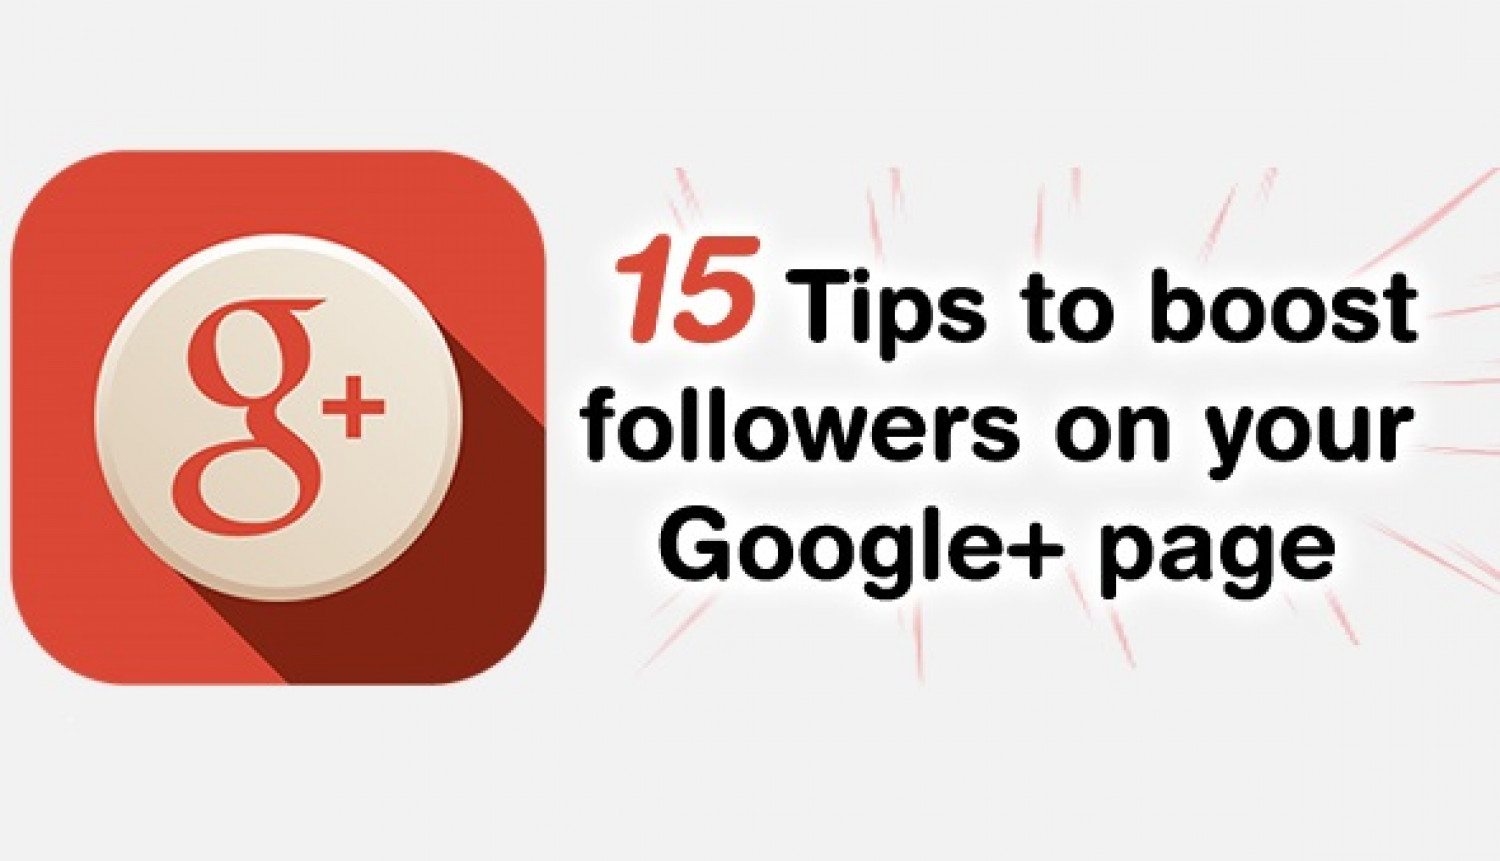 15 Tips to Boost Followers on Your Google + Page Infographic